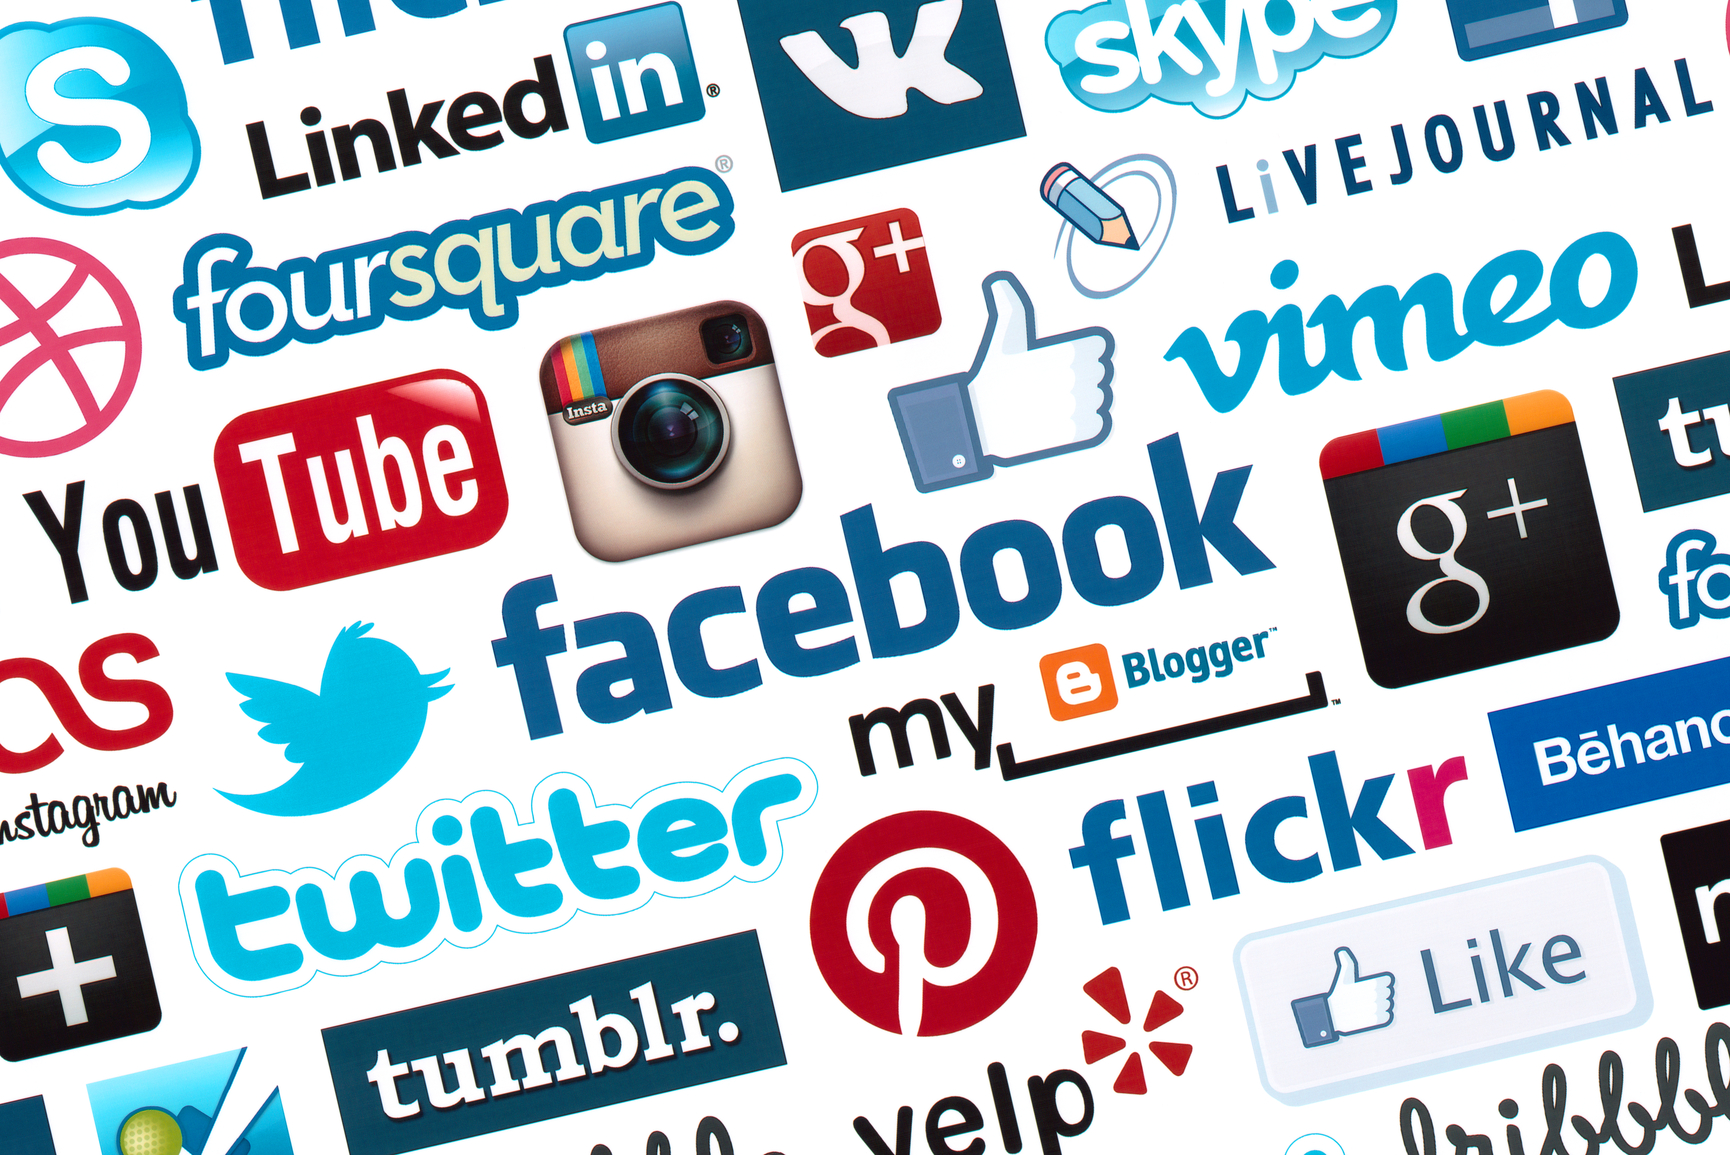 STEP BY STEP GUIDE TO SOCIAL MEDIA SUCCESS -